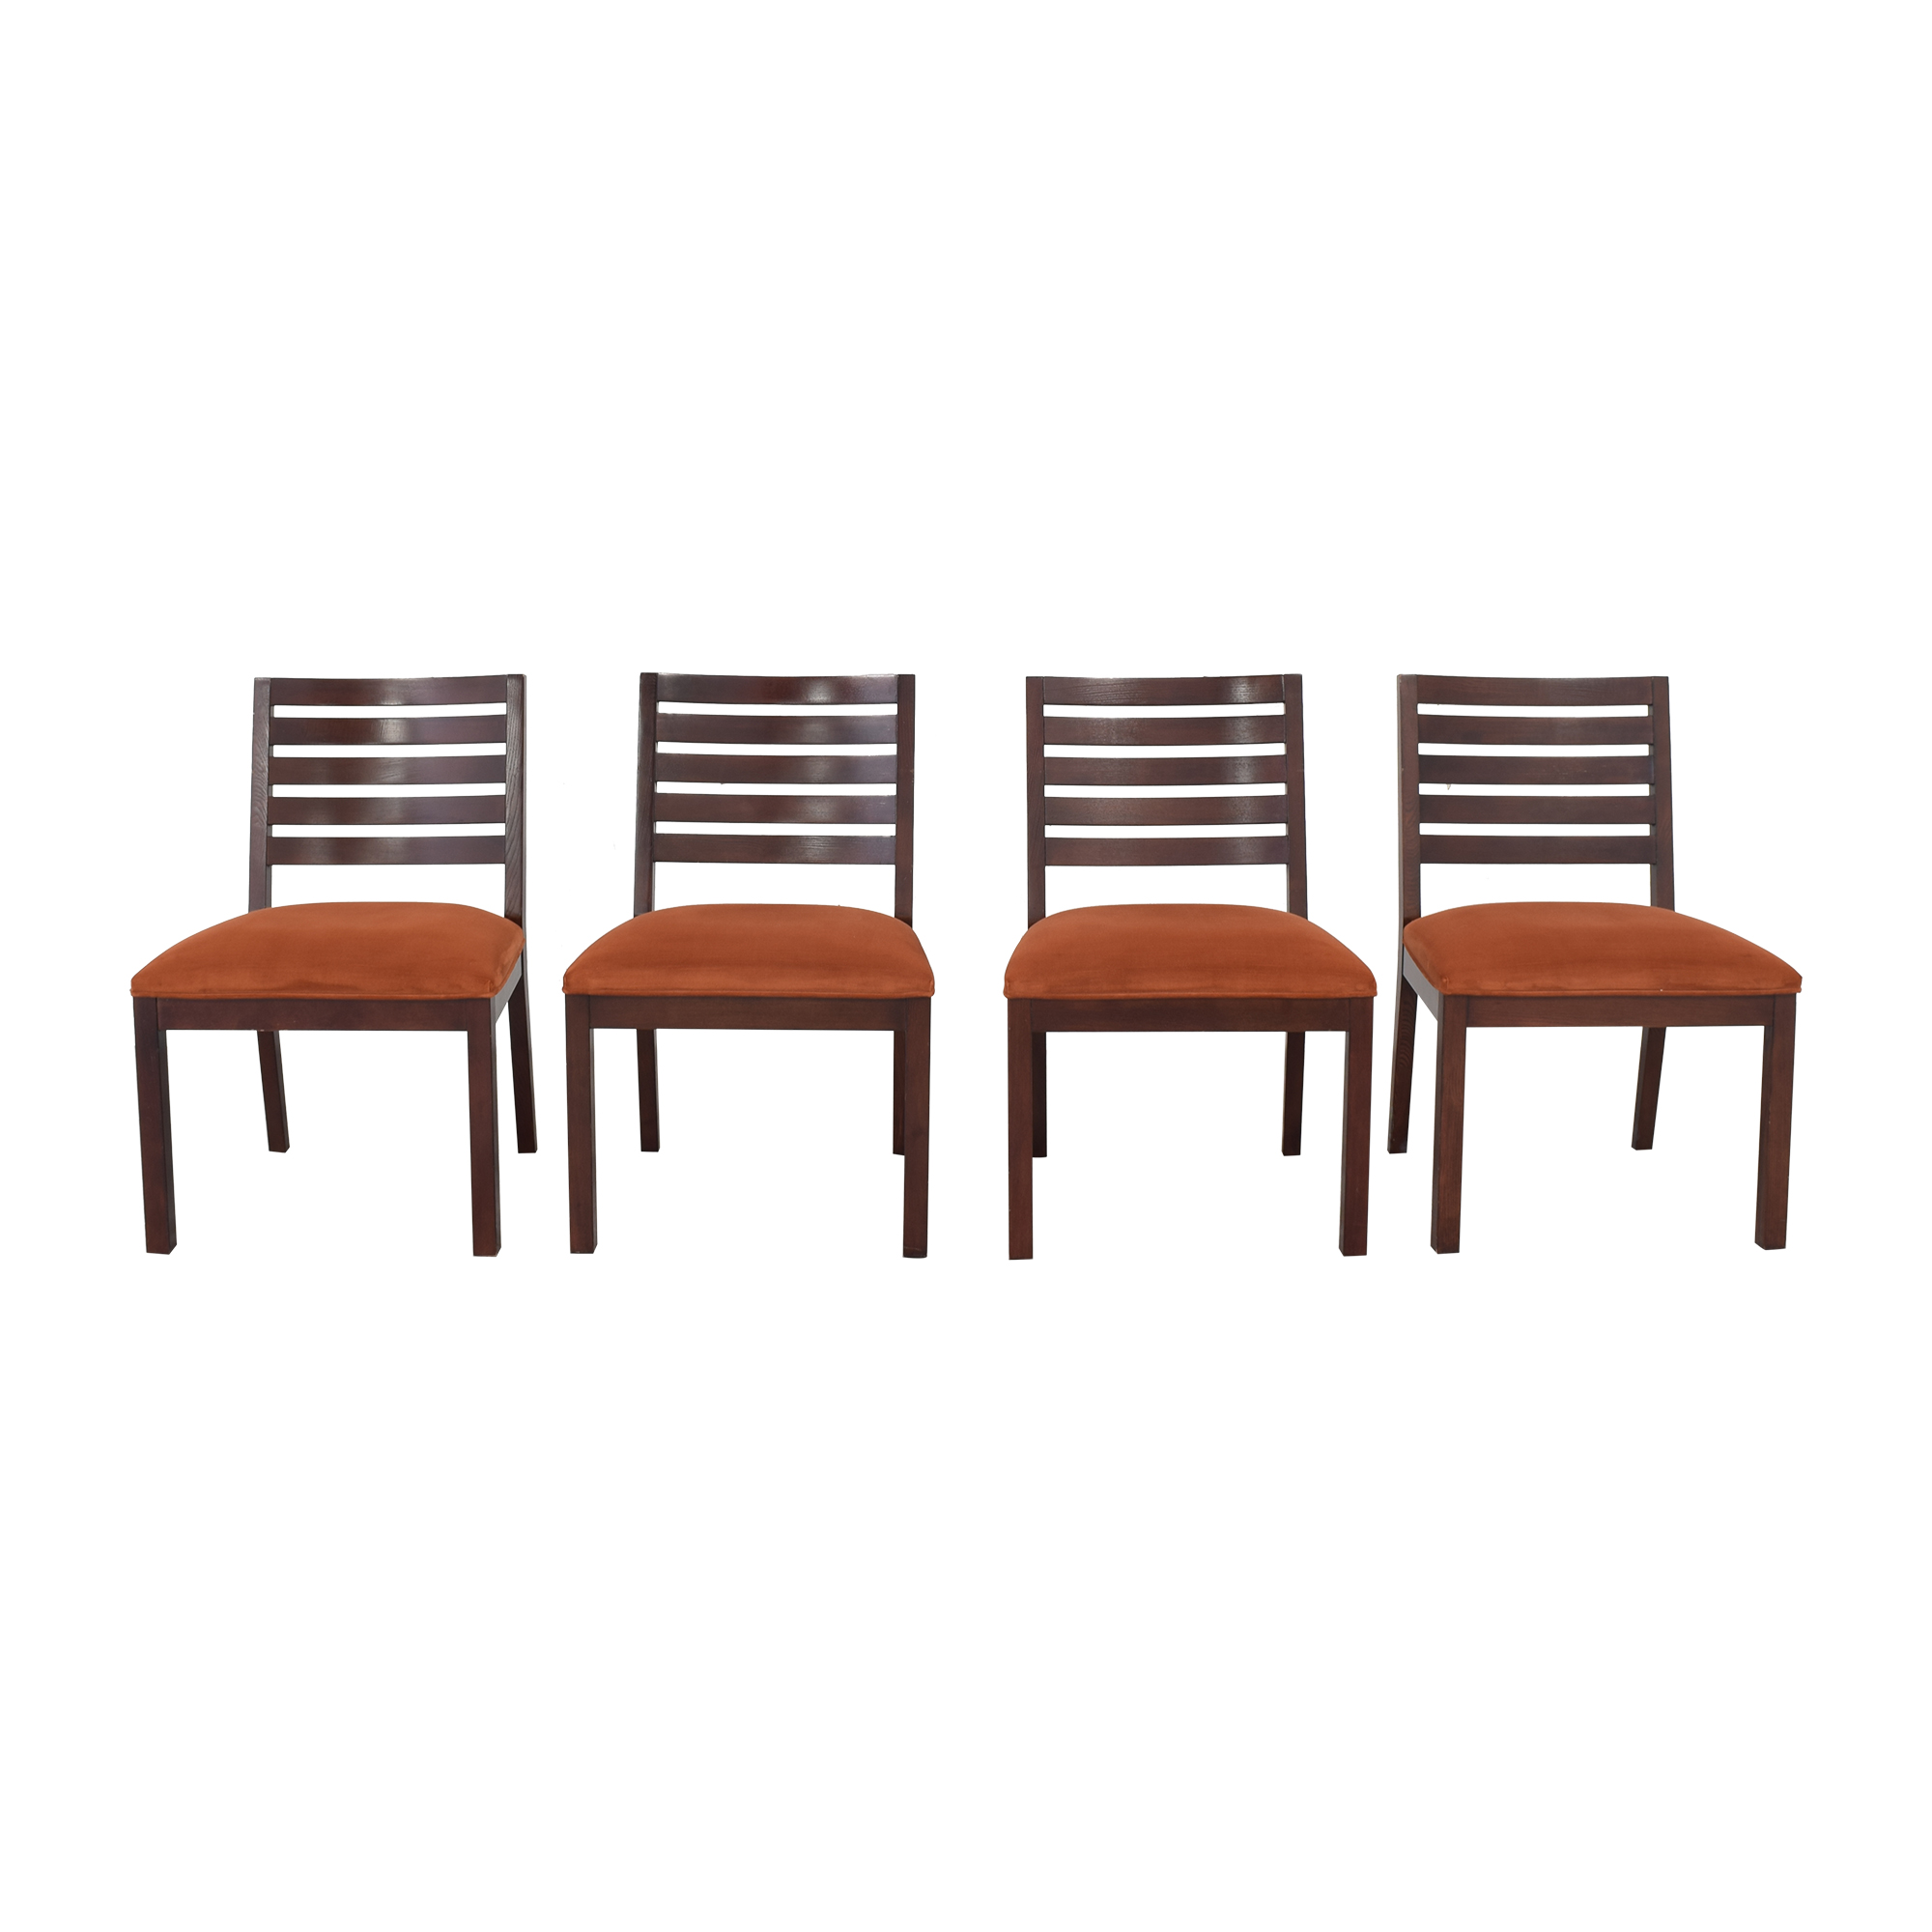 Ethan Allen Upholstered Dining Chairs / Dining Chairs